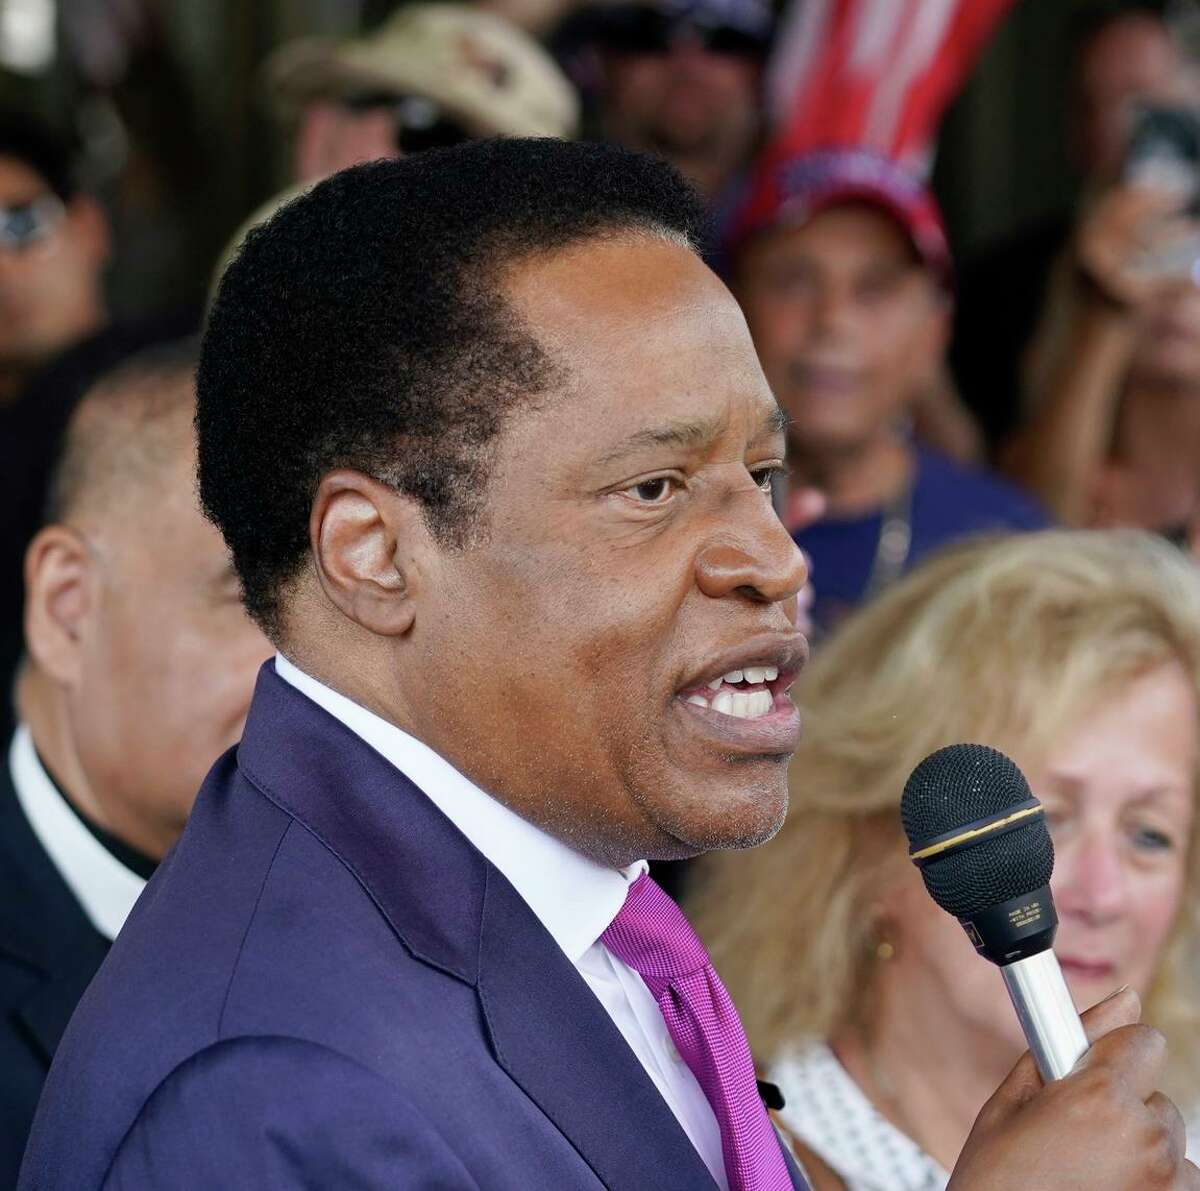 Conservative radio talk show host Larry Elder is polling at the top of the pack among the Republican candidates challenging Gov. Gavin Newsom in the Sept. 14 recall election.